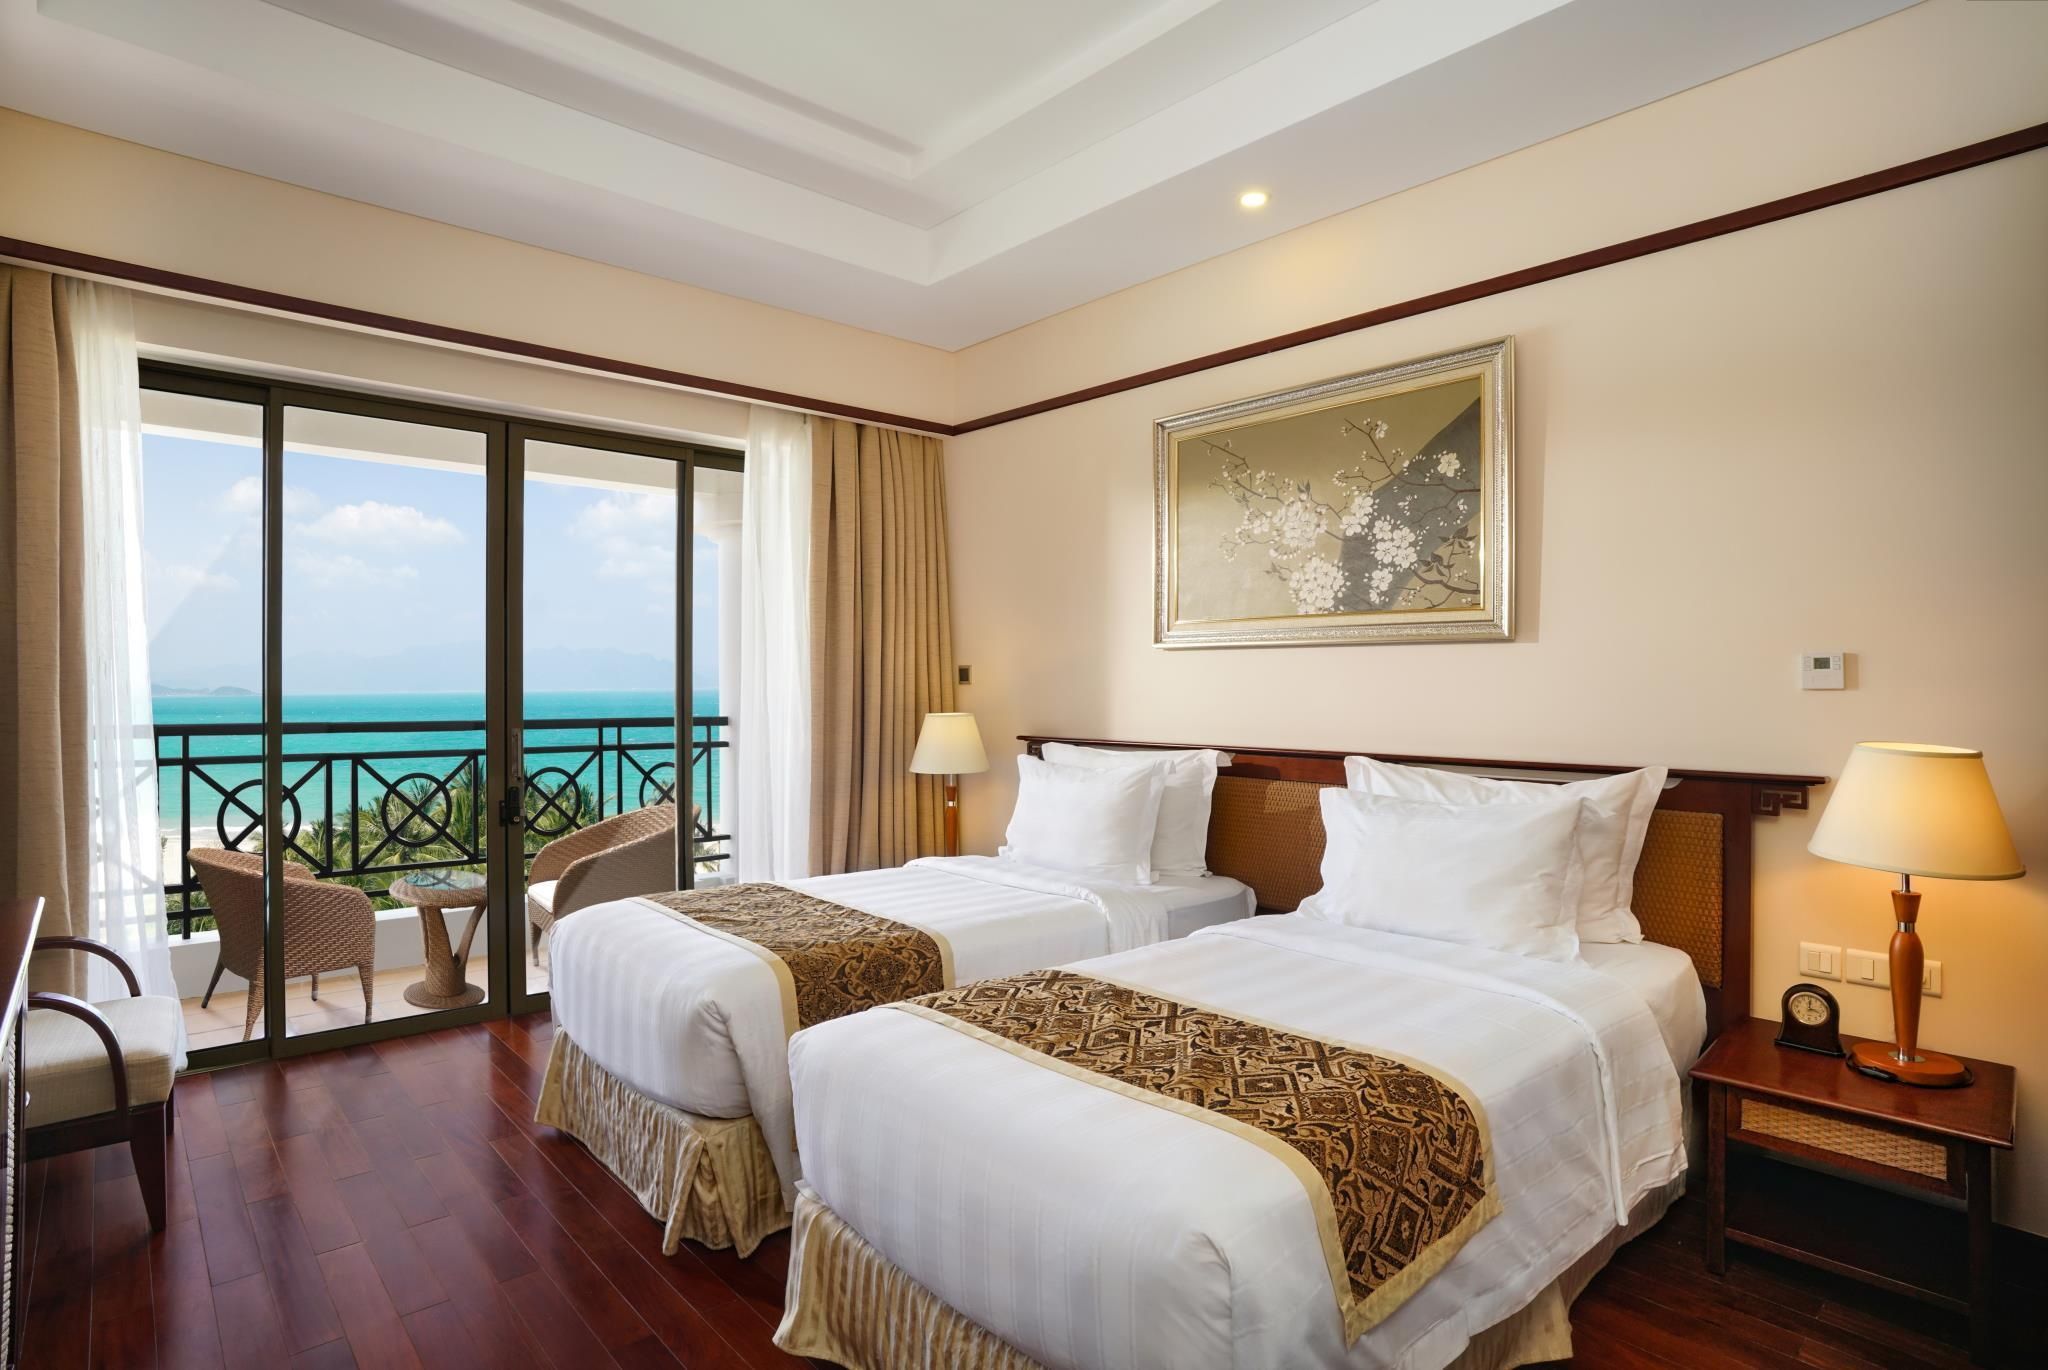 Phòng Deluxe 2 giường Hướng biển (Deluxe Twin Ocean View)